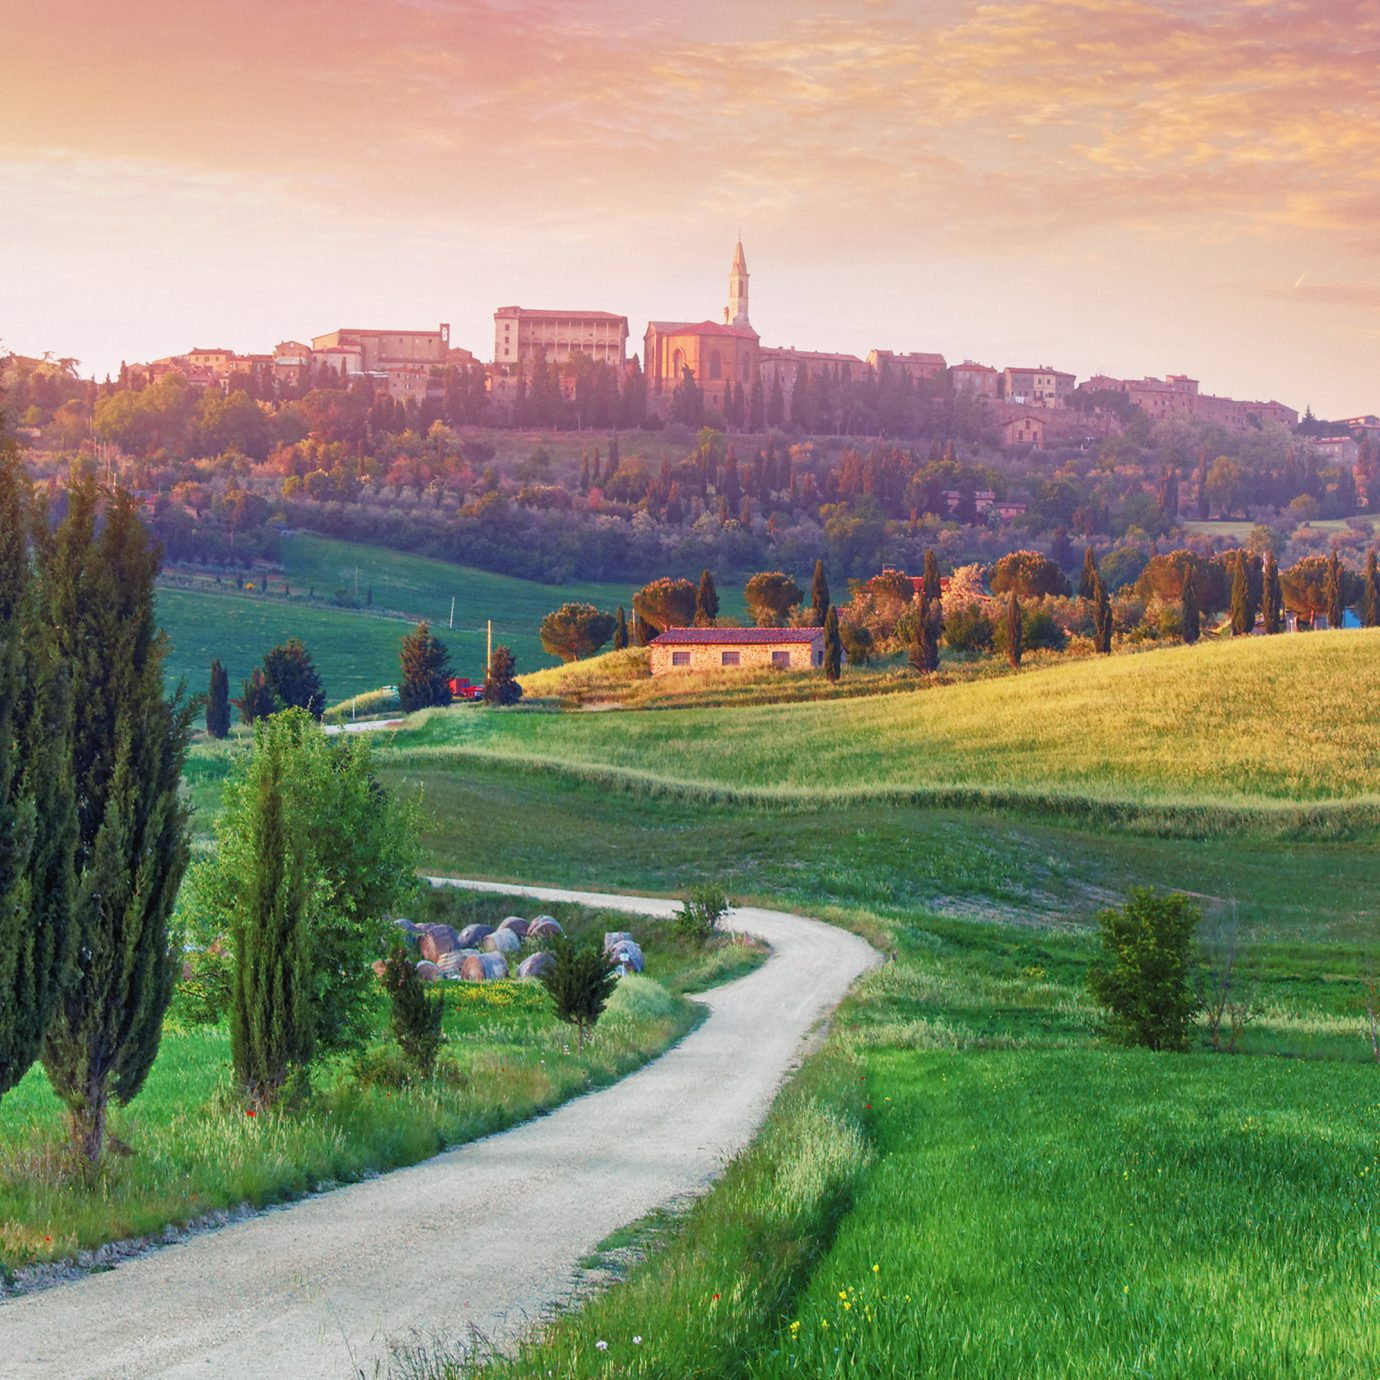 Scenery in Val d'Orcia, Italy